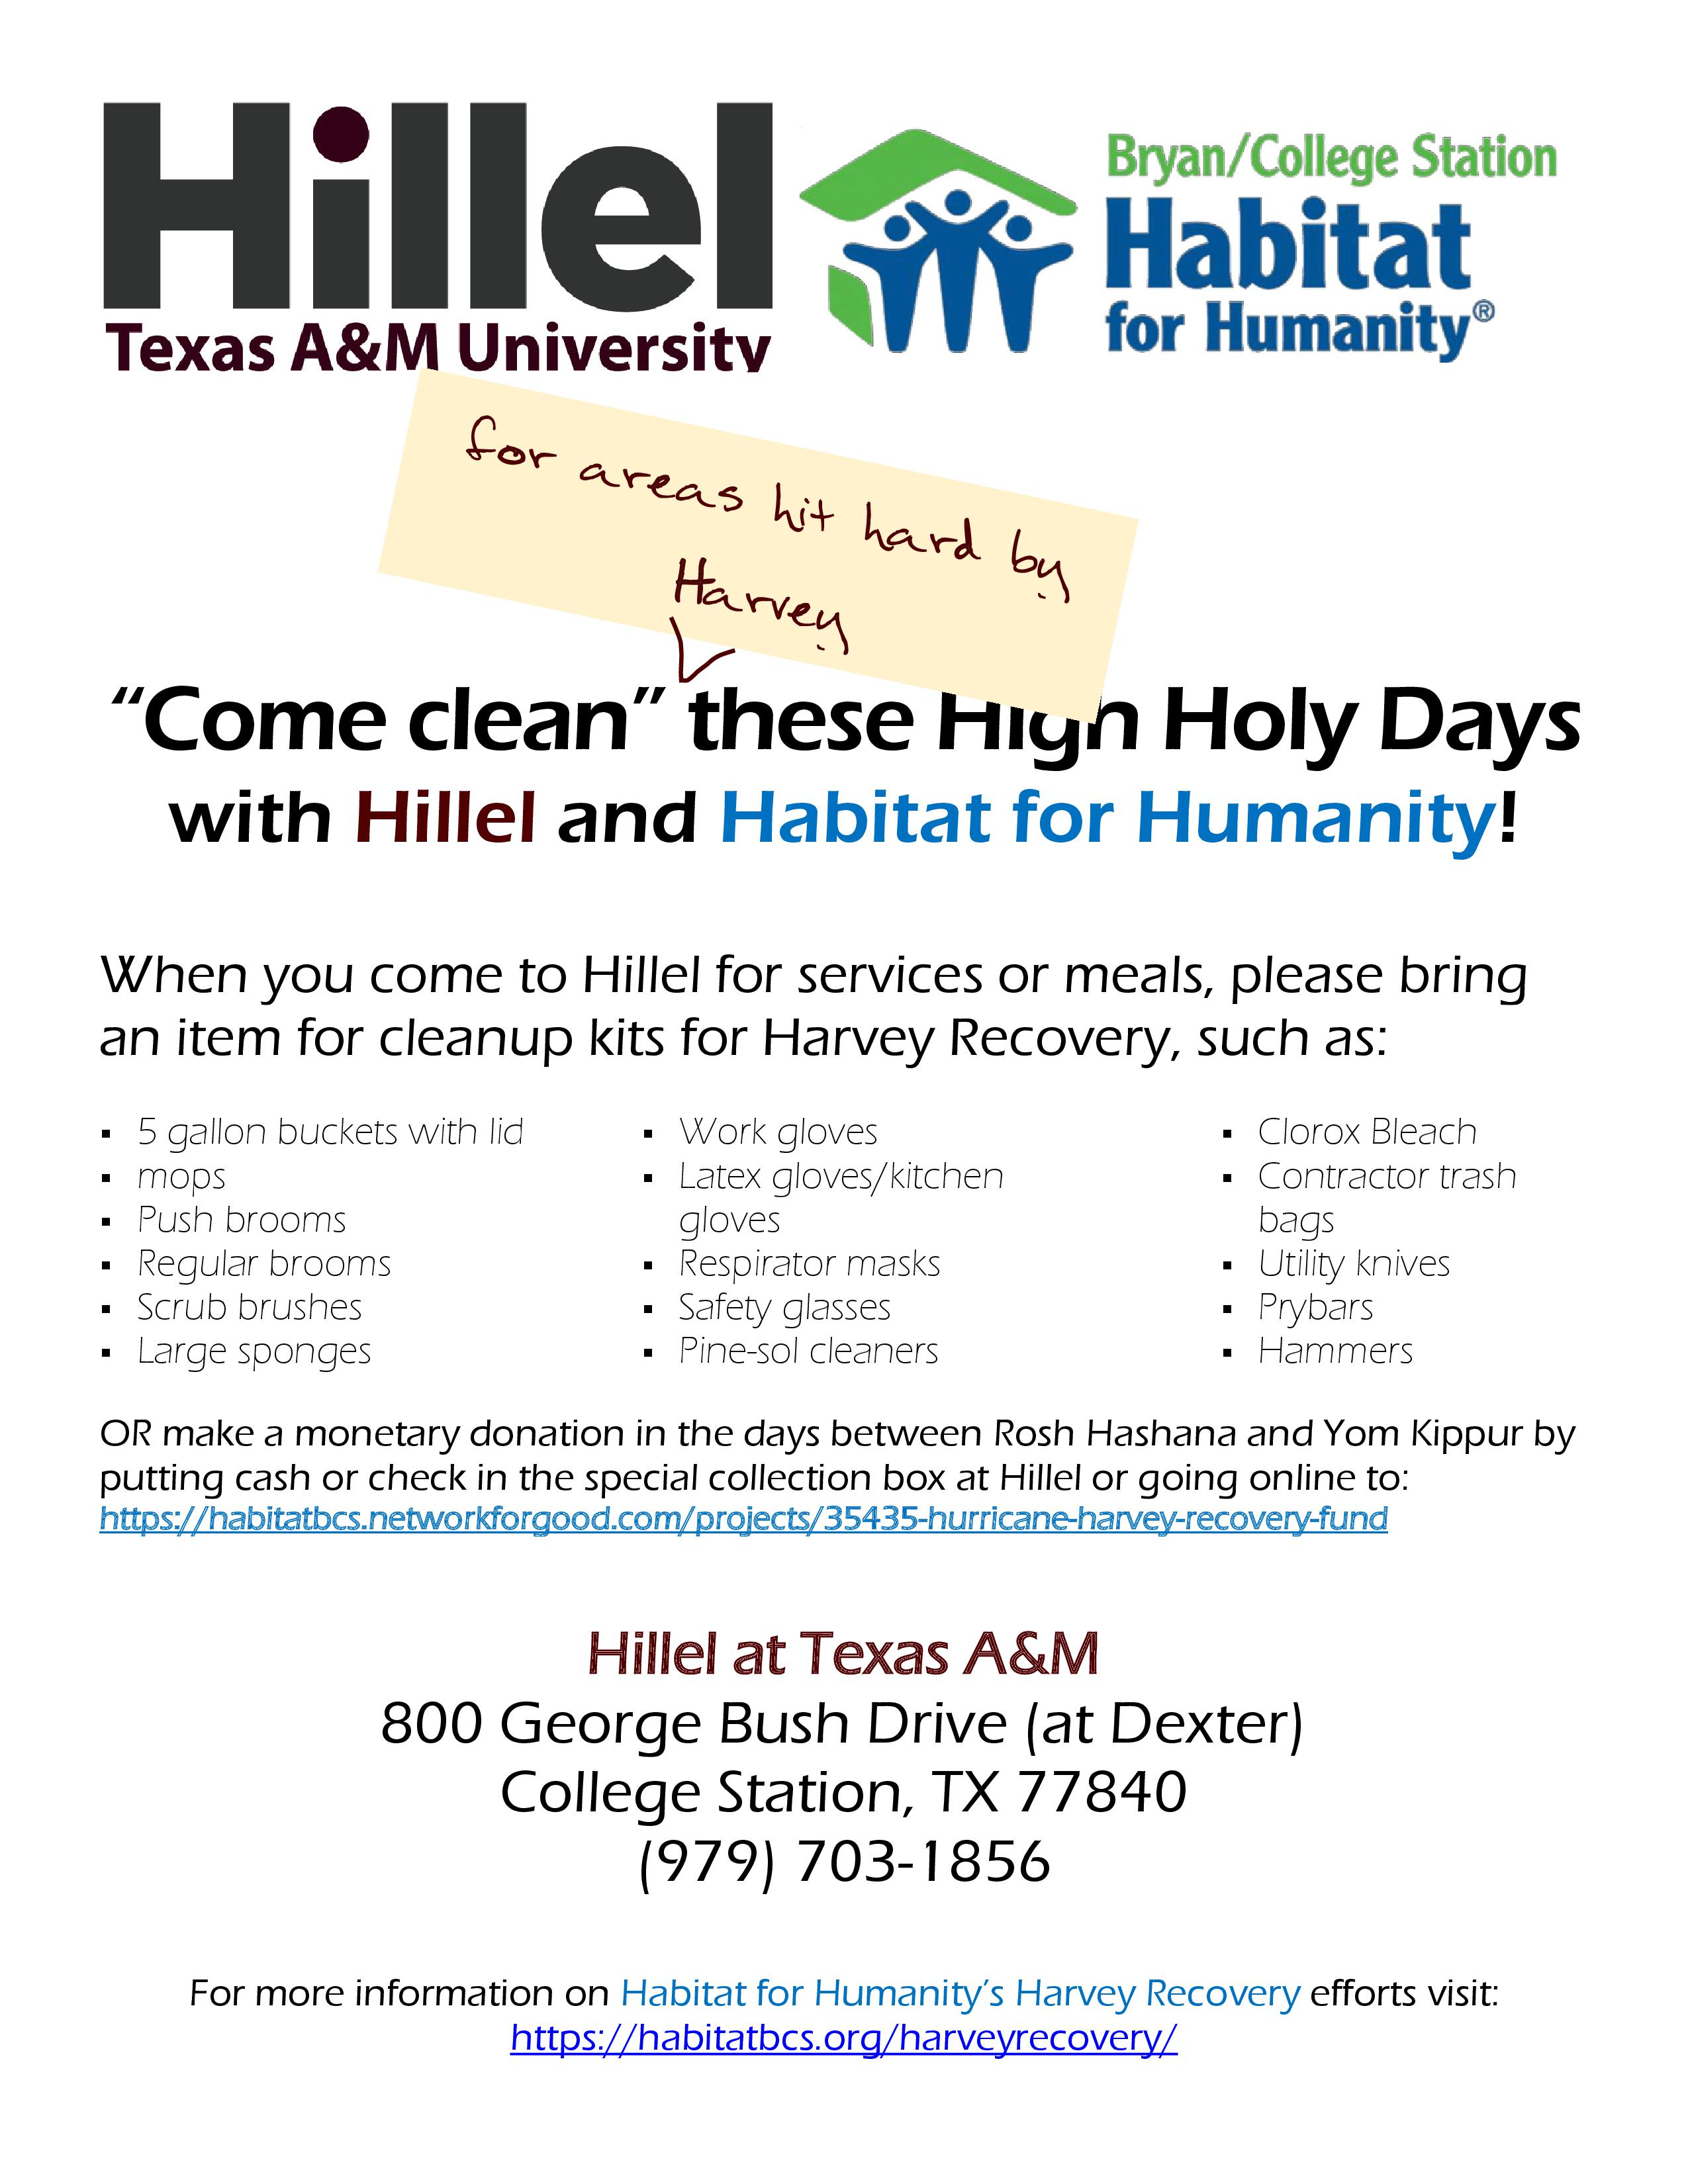 Come Clean (for Harvey) these High Holy Days!